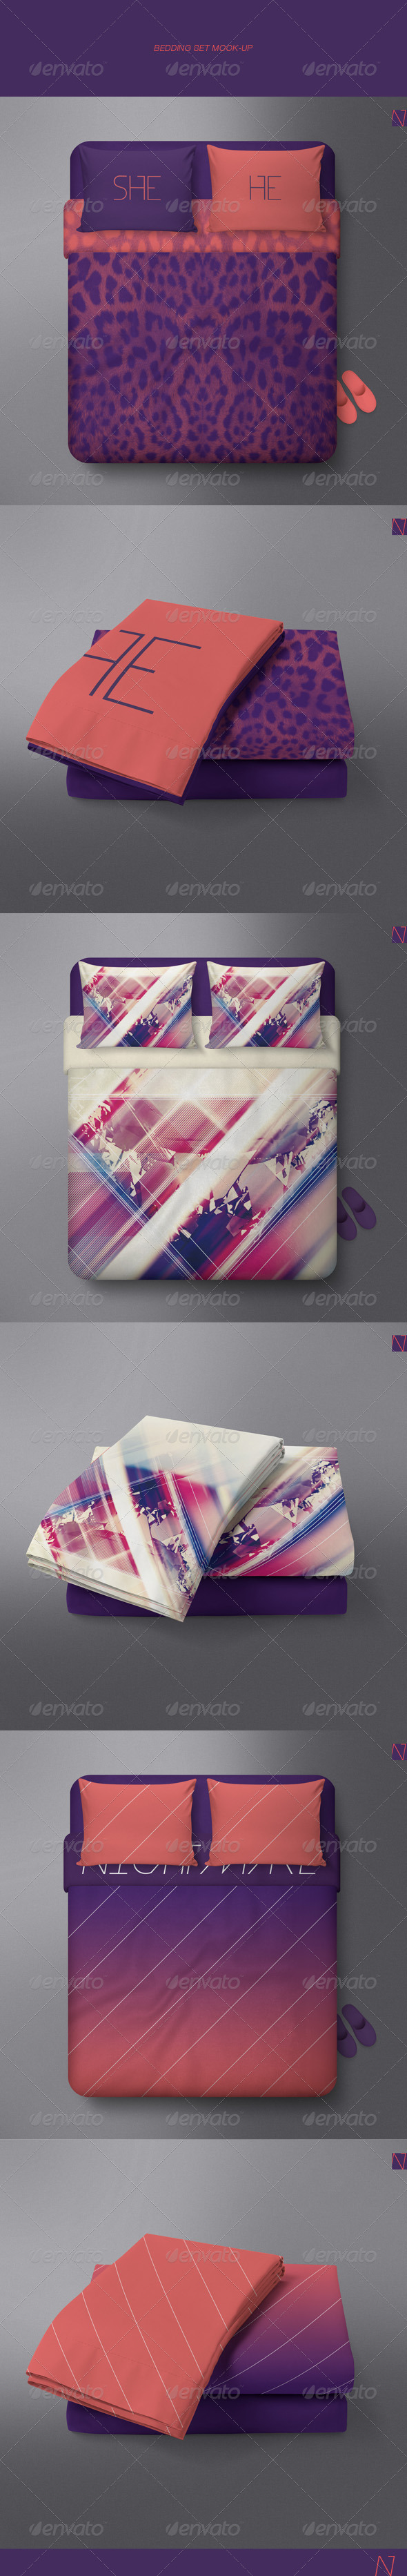 GraphicRiver Bedclothes Mock-up 7707031